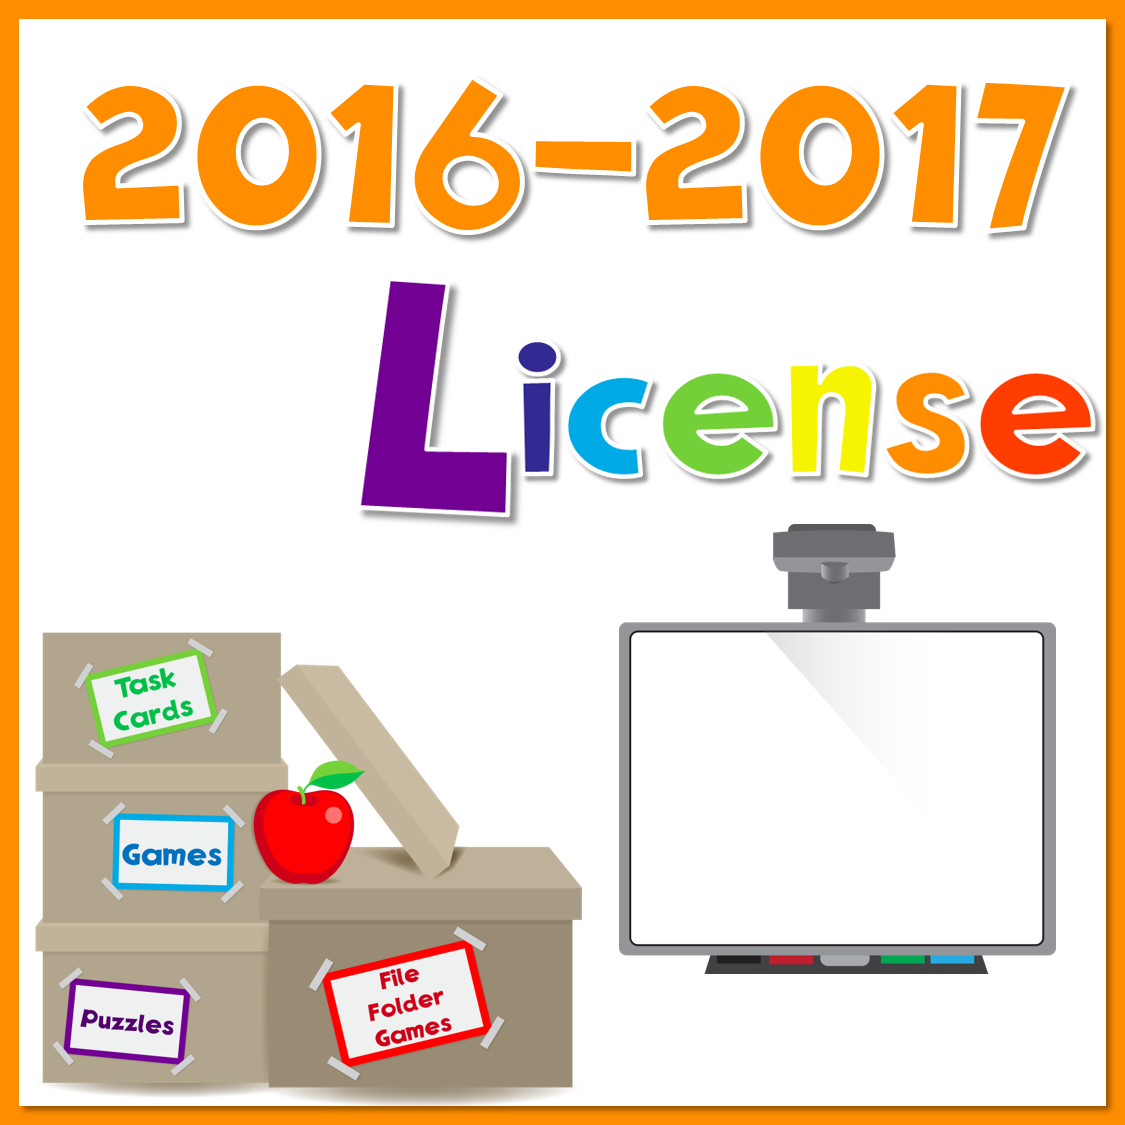 2016-2017 Yearly License